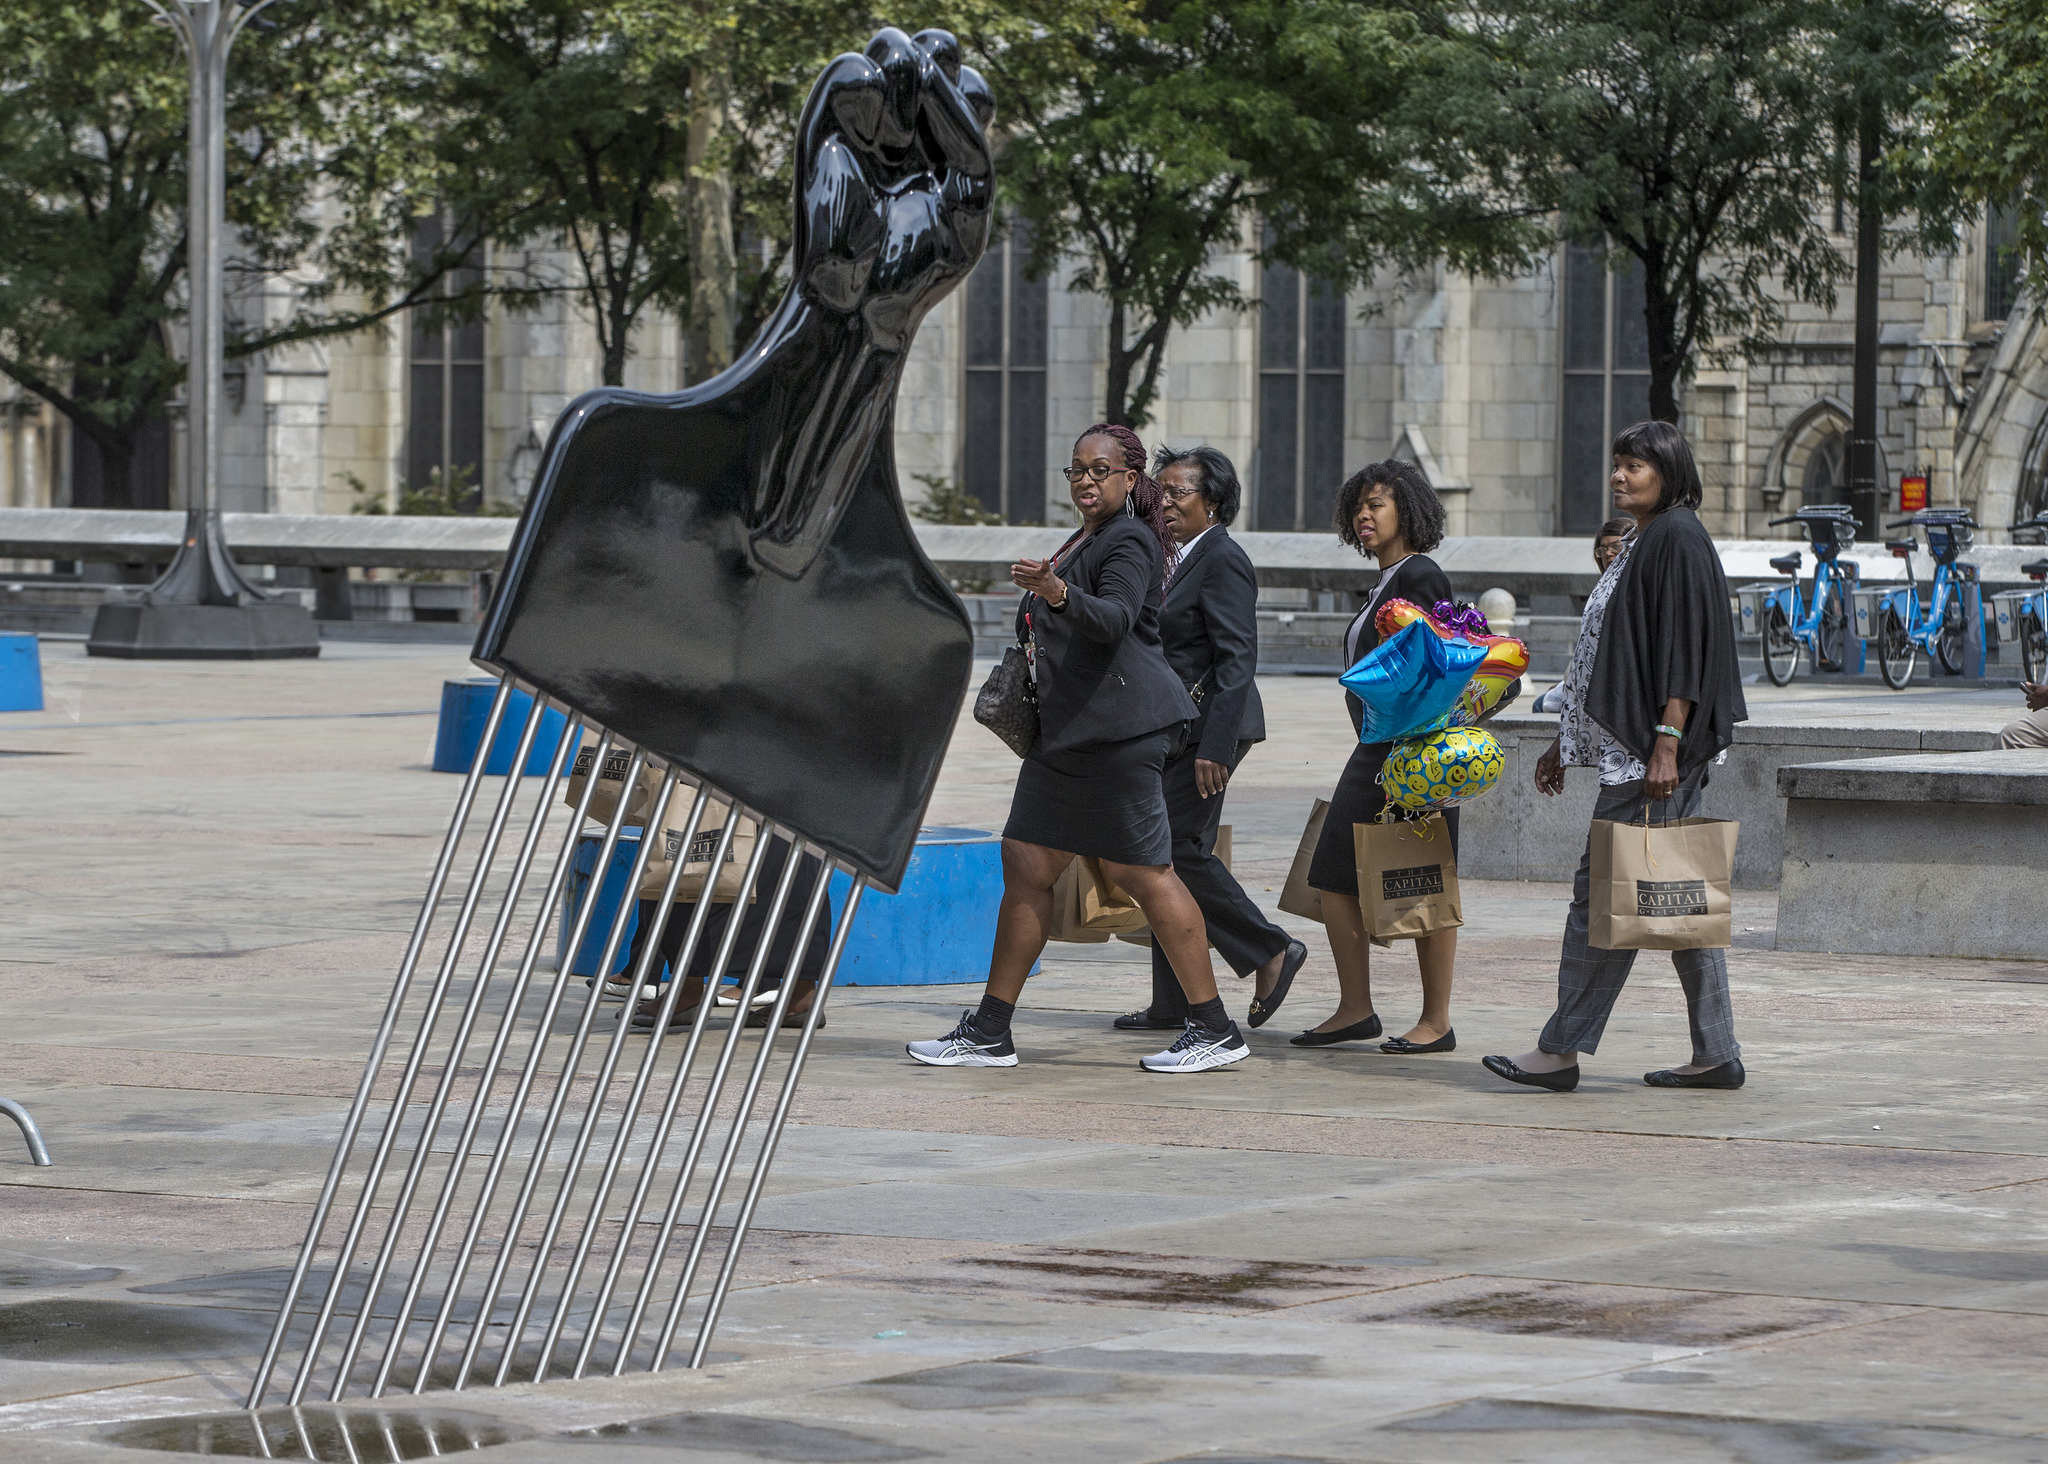 "A group of women walk past the Hank Willis Thomas ""All Power to All People"" sculpture installed at Thomas Paine Plaza across from Philadelphia City Hall. The Pop Art sculpture is an Afro pick with upright fist with handled that looks like a Black Power fist."